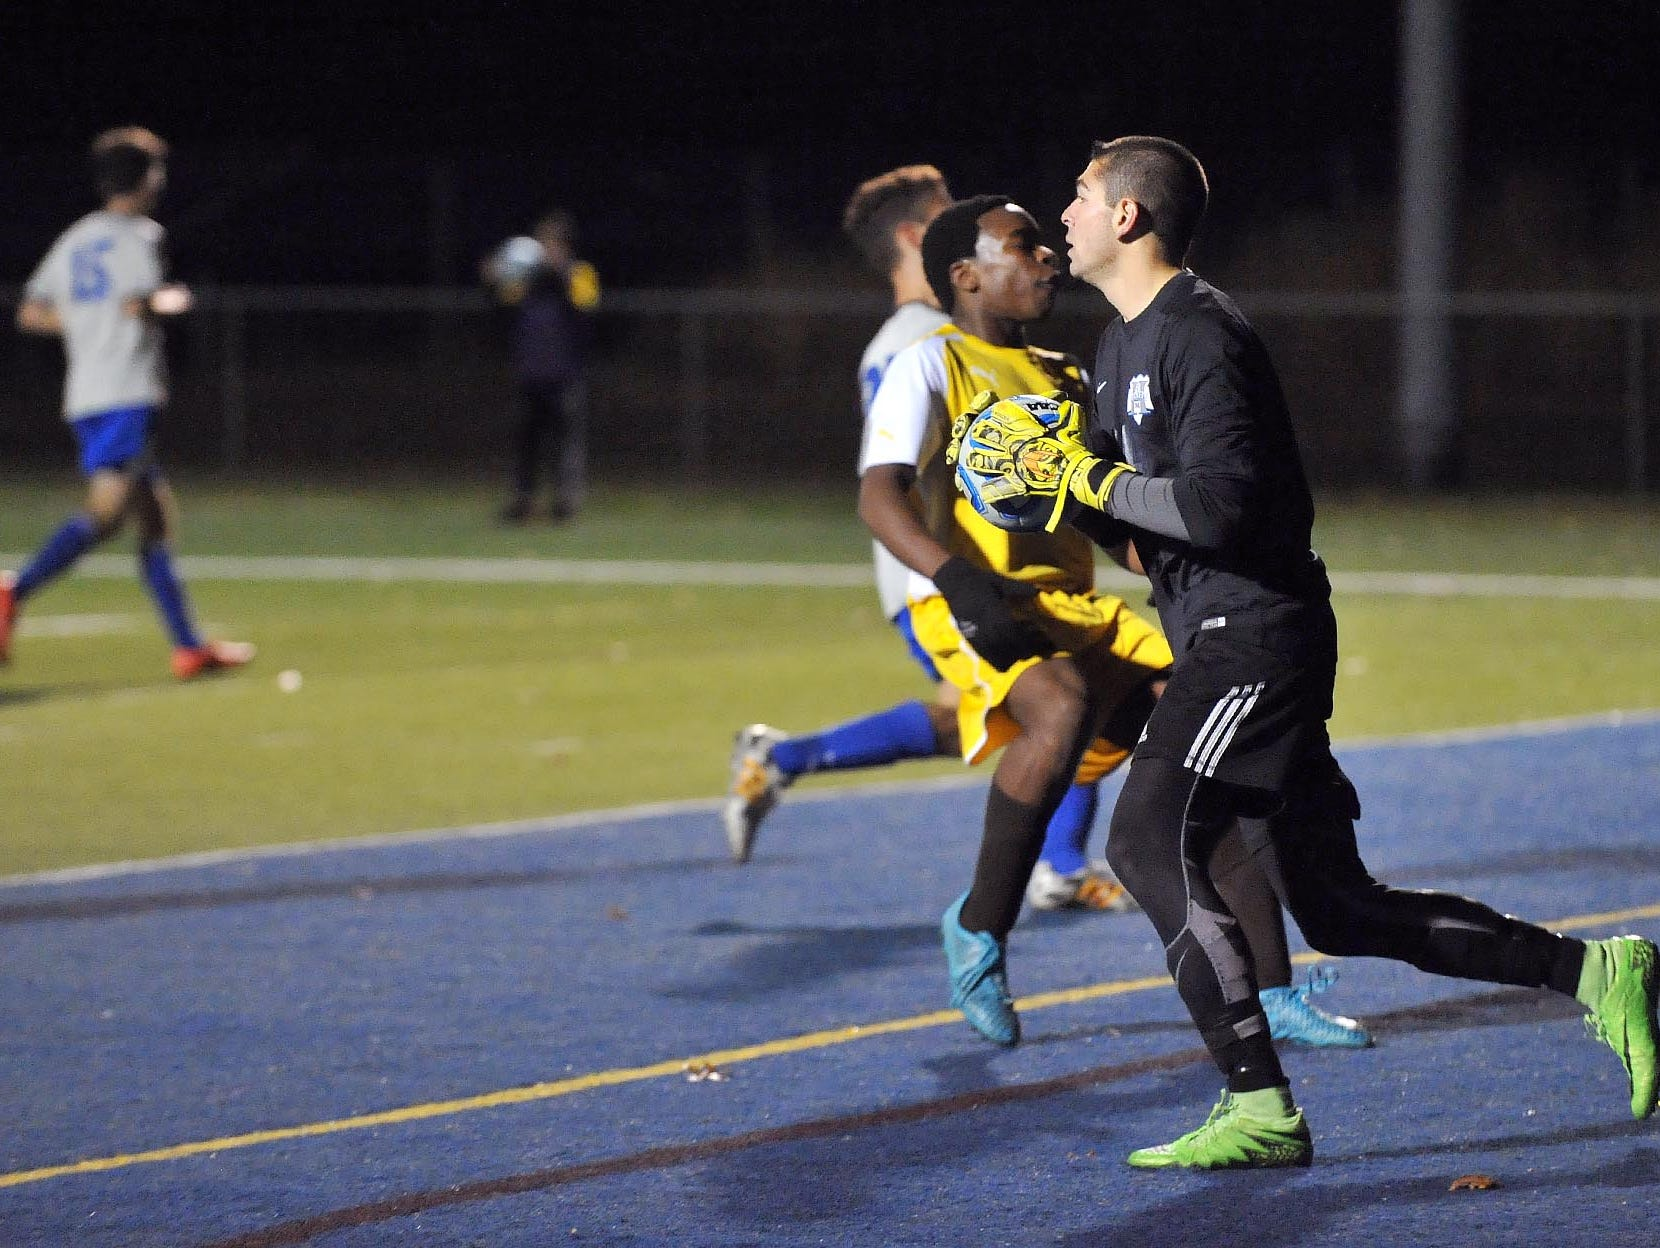 Holmdel goalkeeper Tyler Marchiano (right) makes a save against Delran in their Group 2 boys' soccer semifinal, Tuesday, Nov. 17 in Buena Vista.